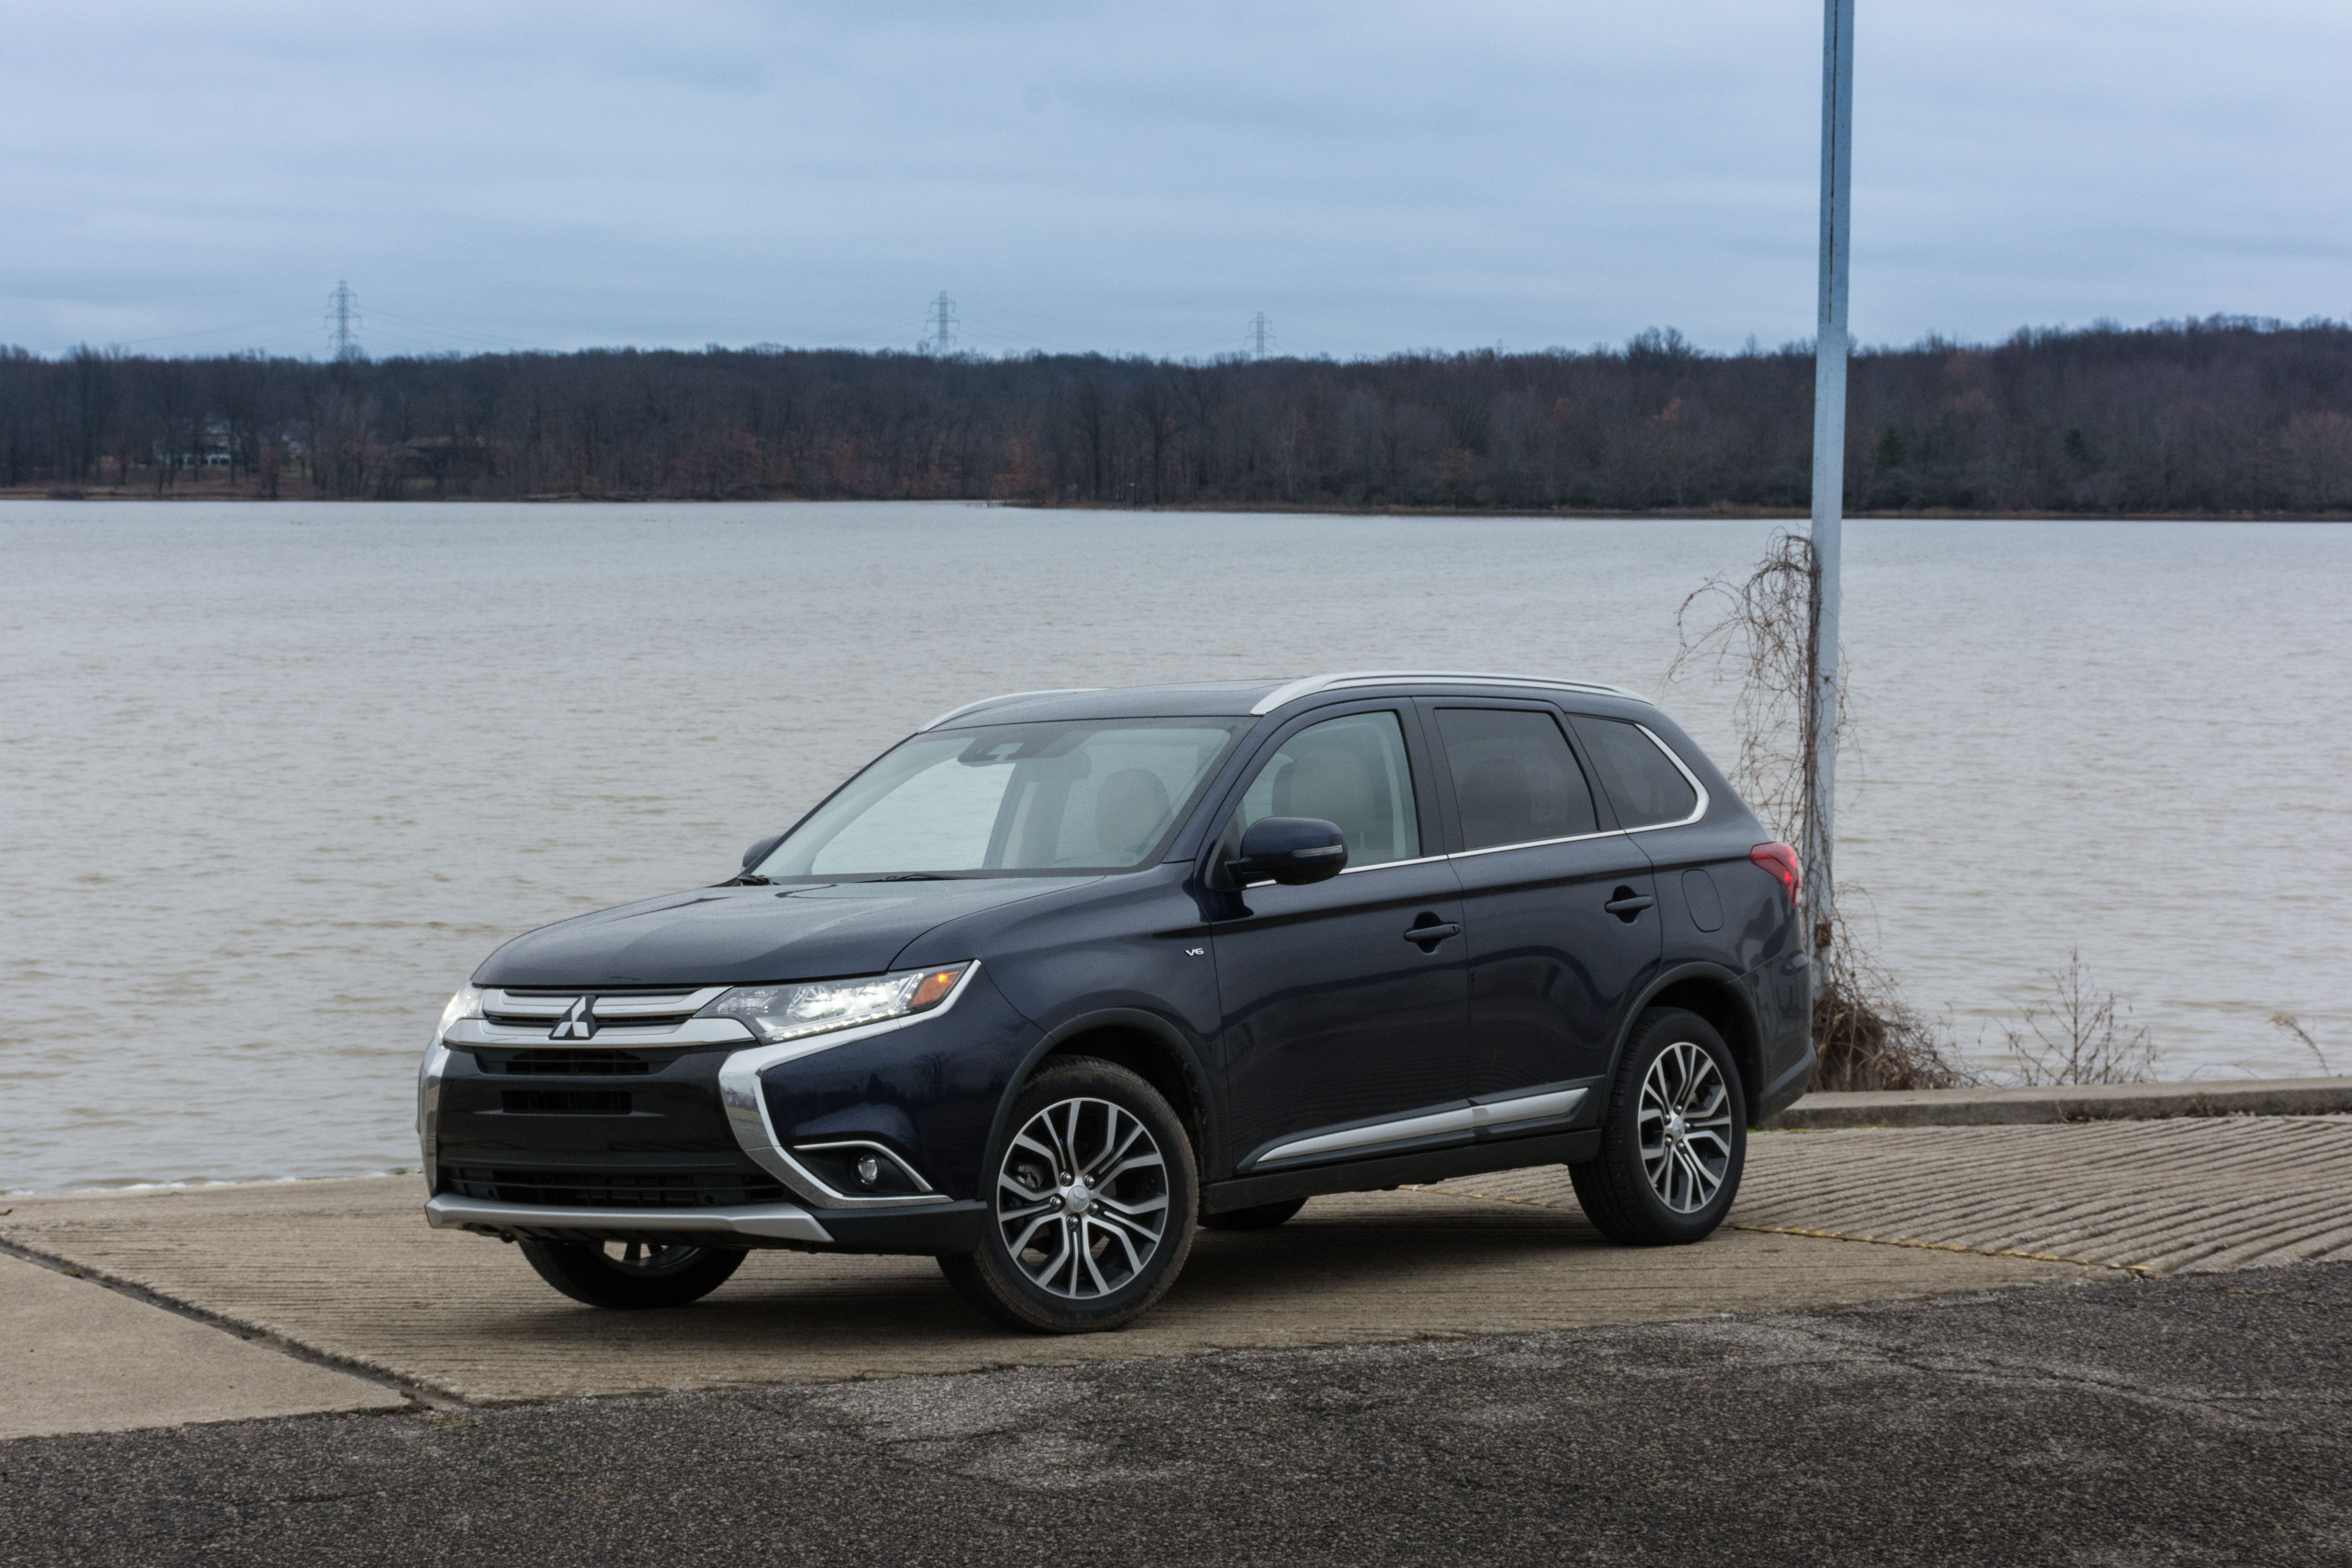 2018 Mitsubishi Outlander 3 0 Gt S Awc Review Not Bad The Truth About Cars Car Enthusiasts Love To Ar Mitsubishi Outlander Best Family Cars Outlander